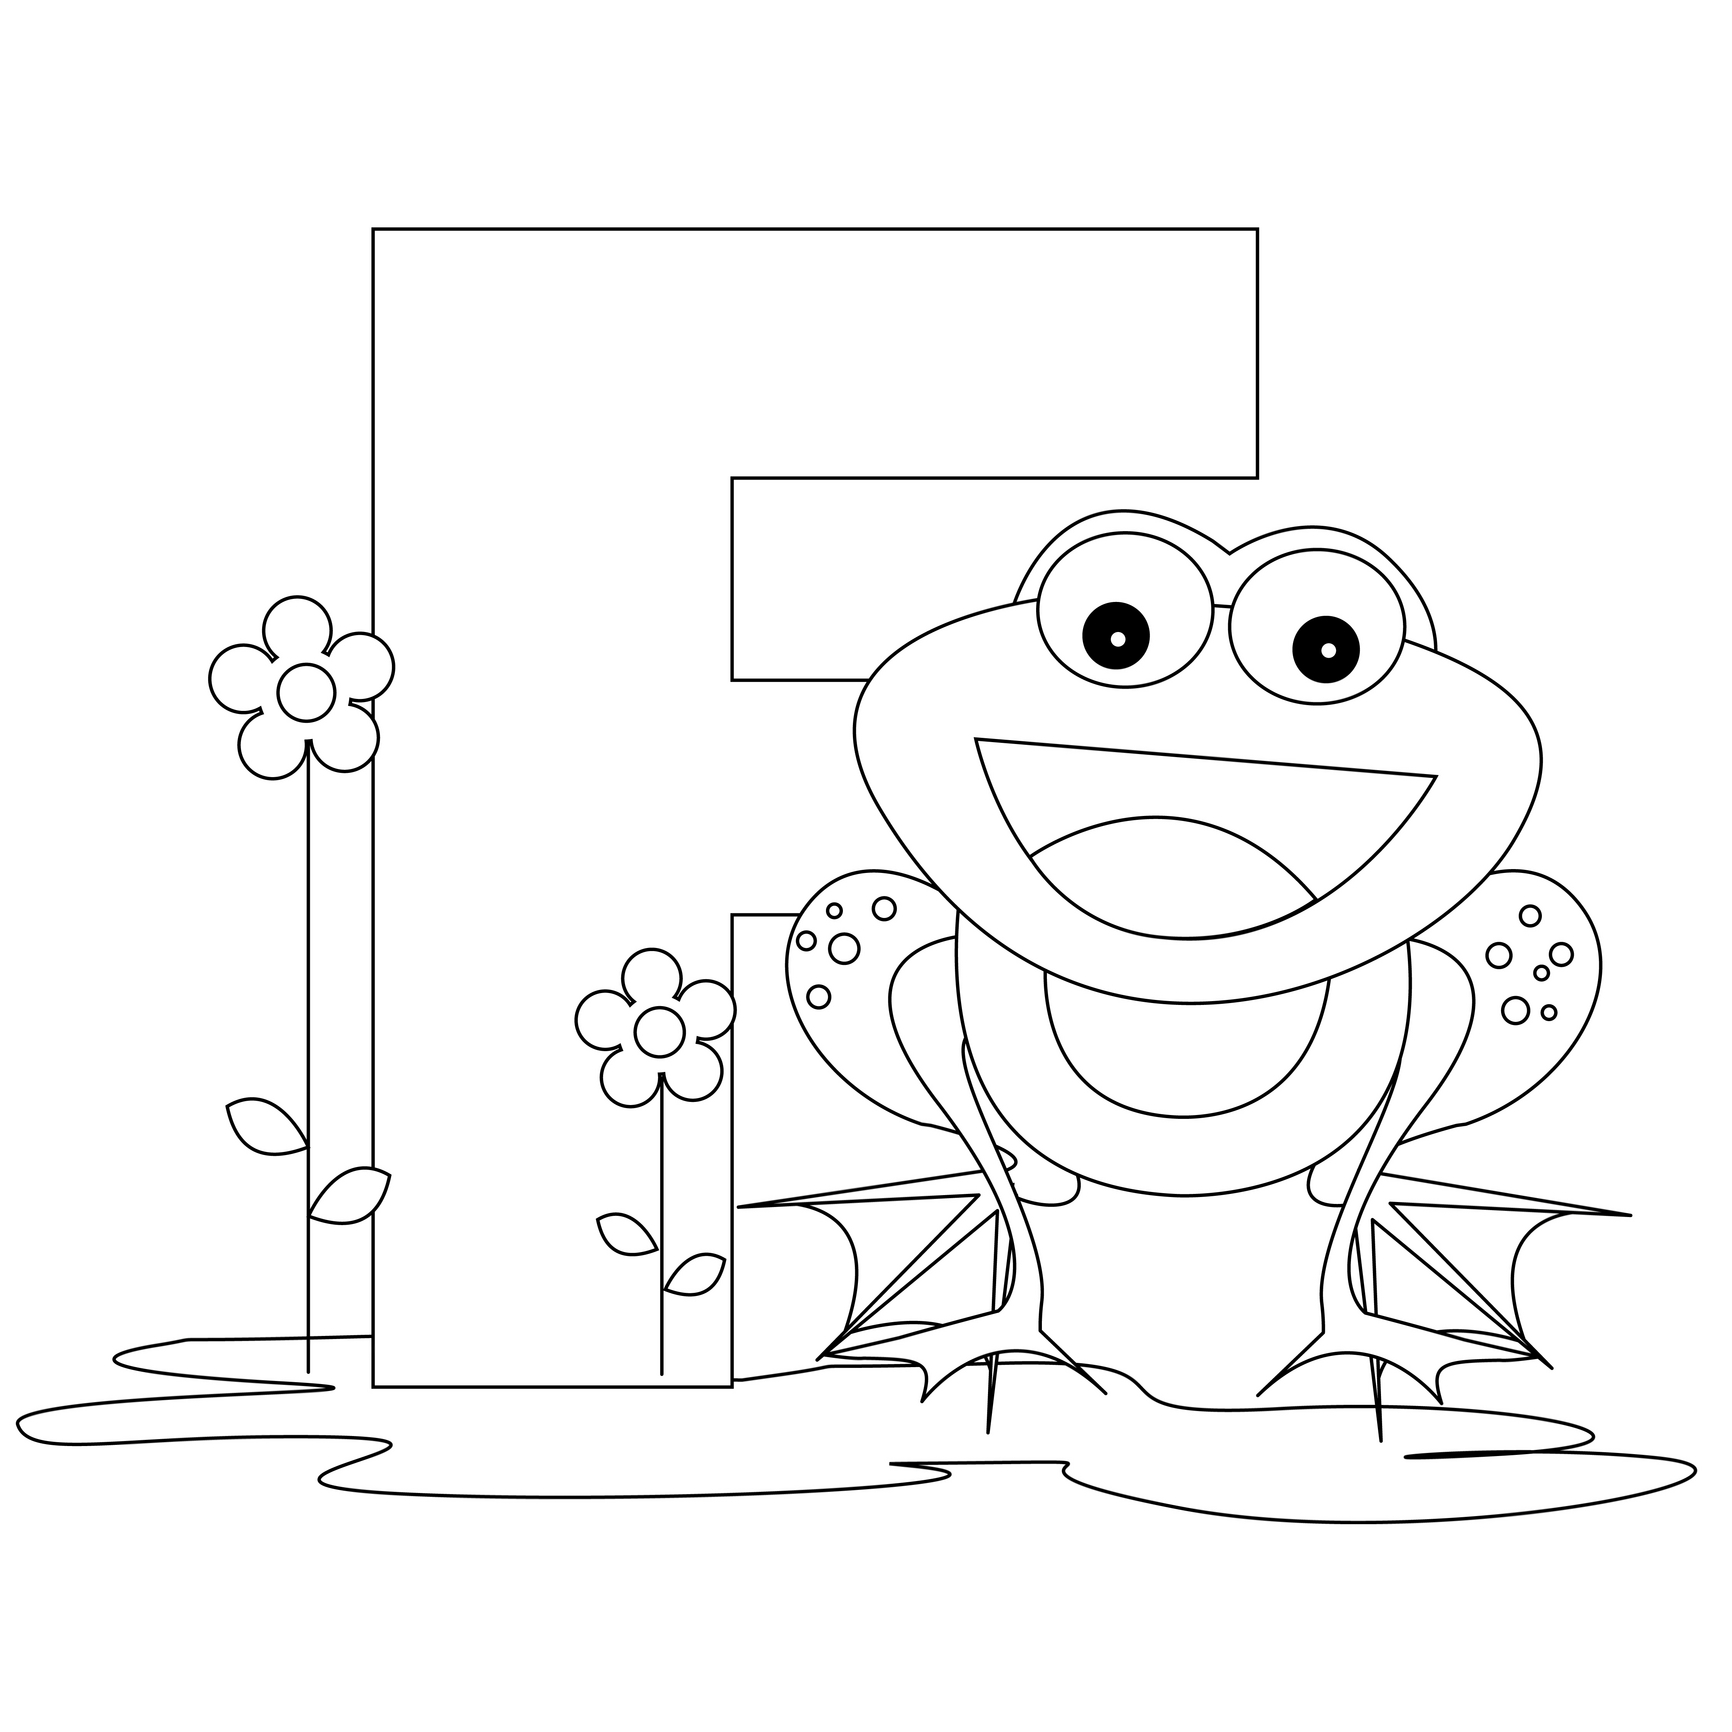 alphabet coloring pages for preschool - letter f coloring pages to download and print for free